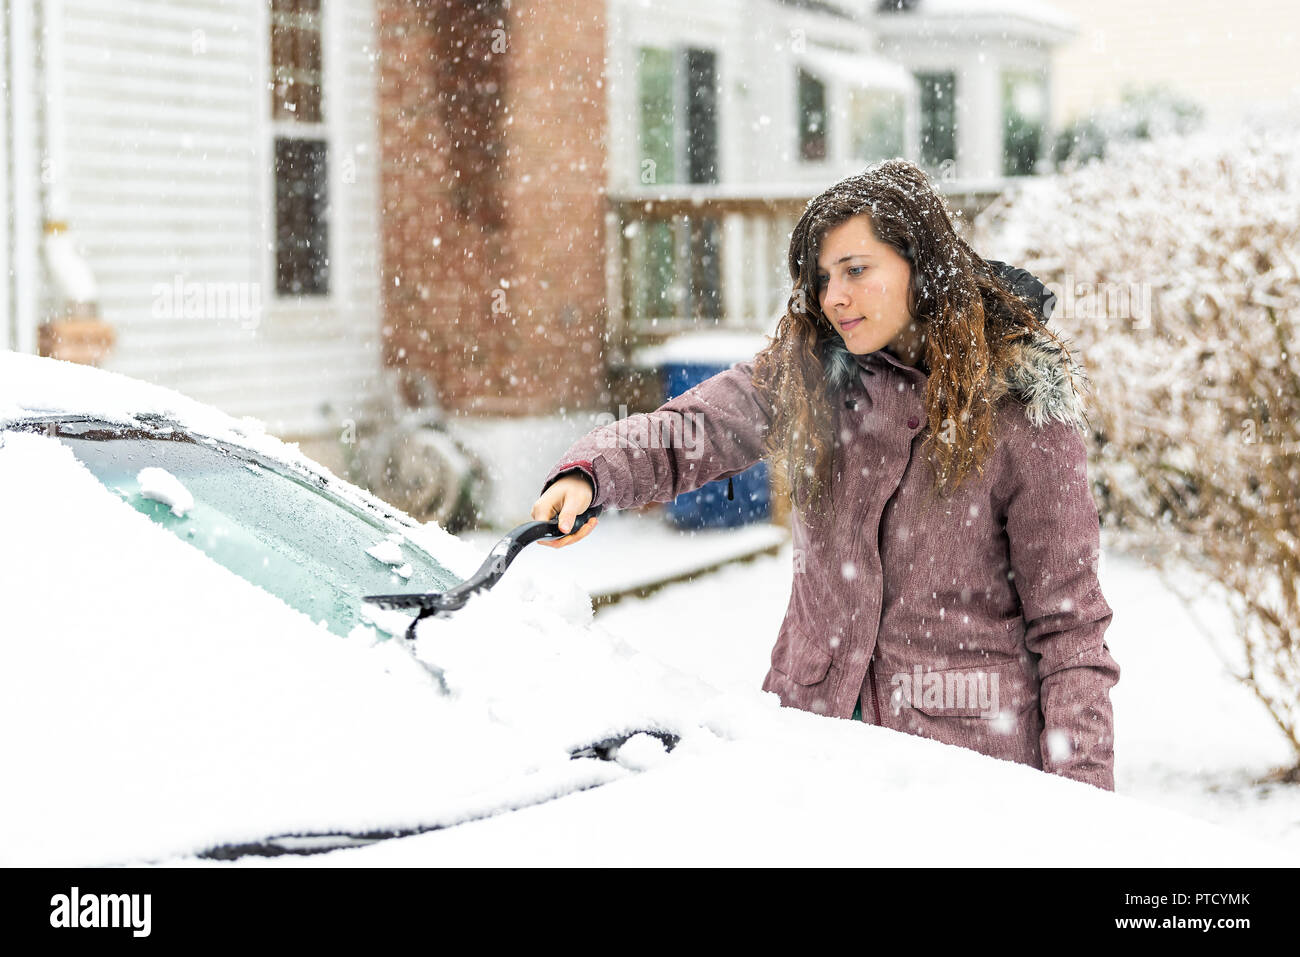 One young woman cleaning car windshield window from snow, ice with brush and scraper tool during snowfall while snowing snowflakes falling - Stock Image